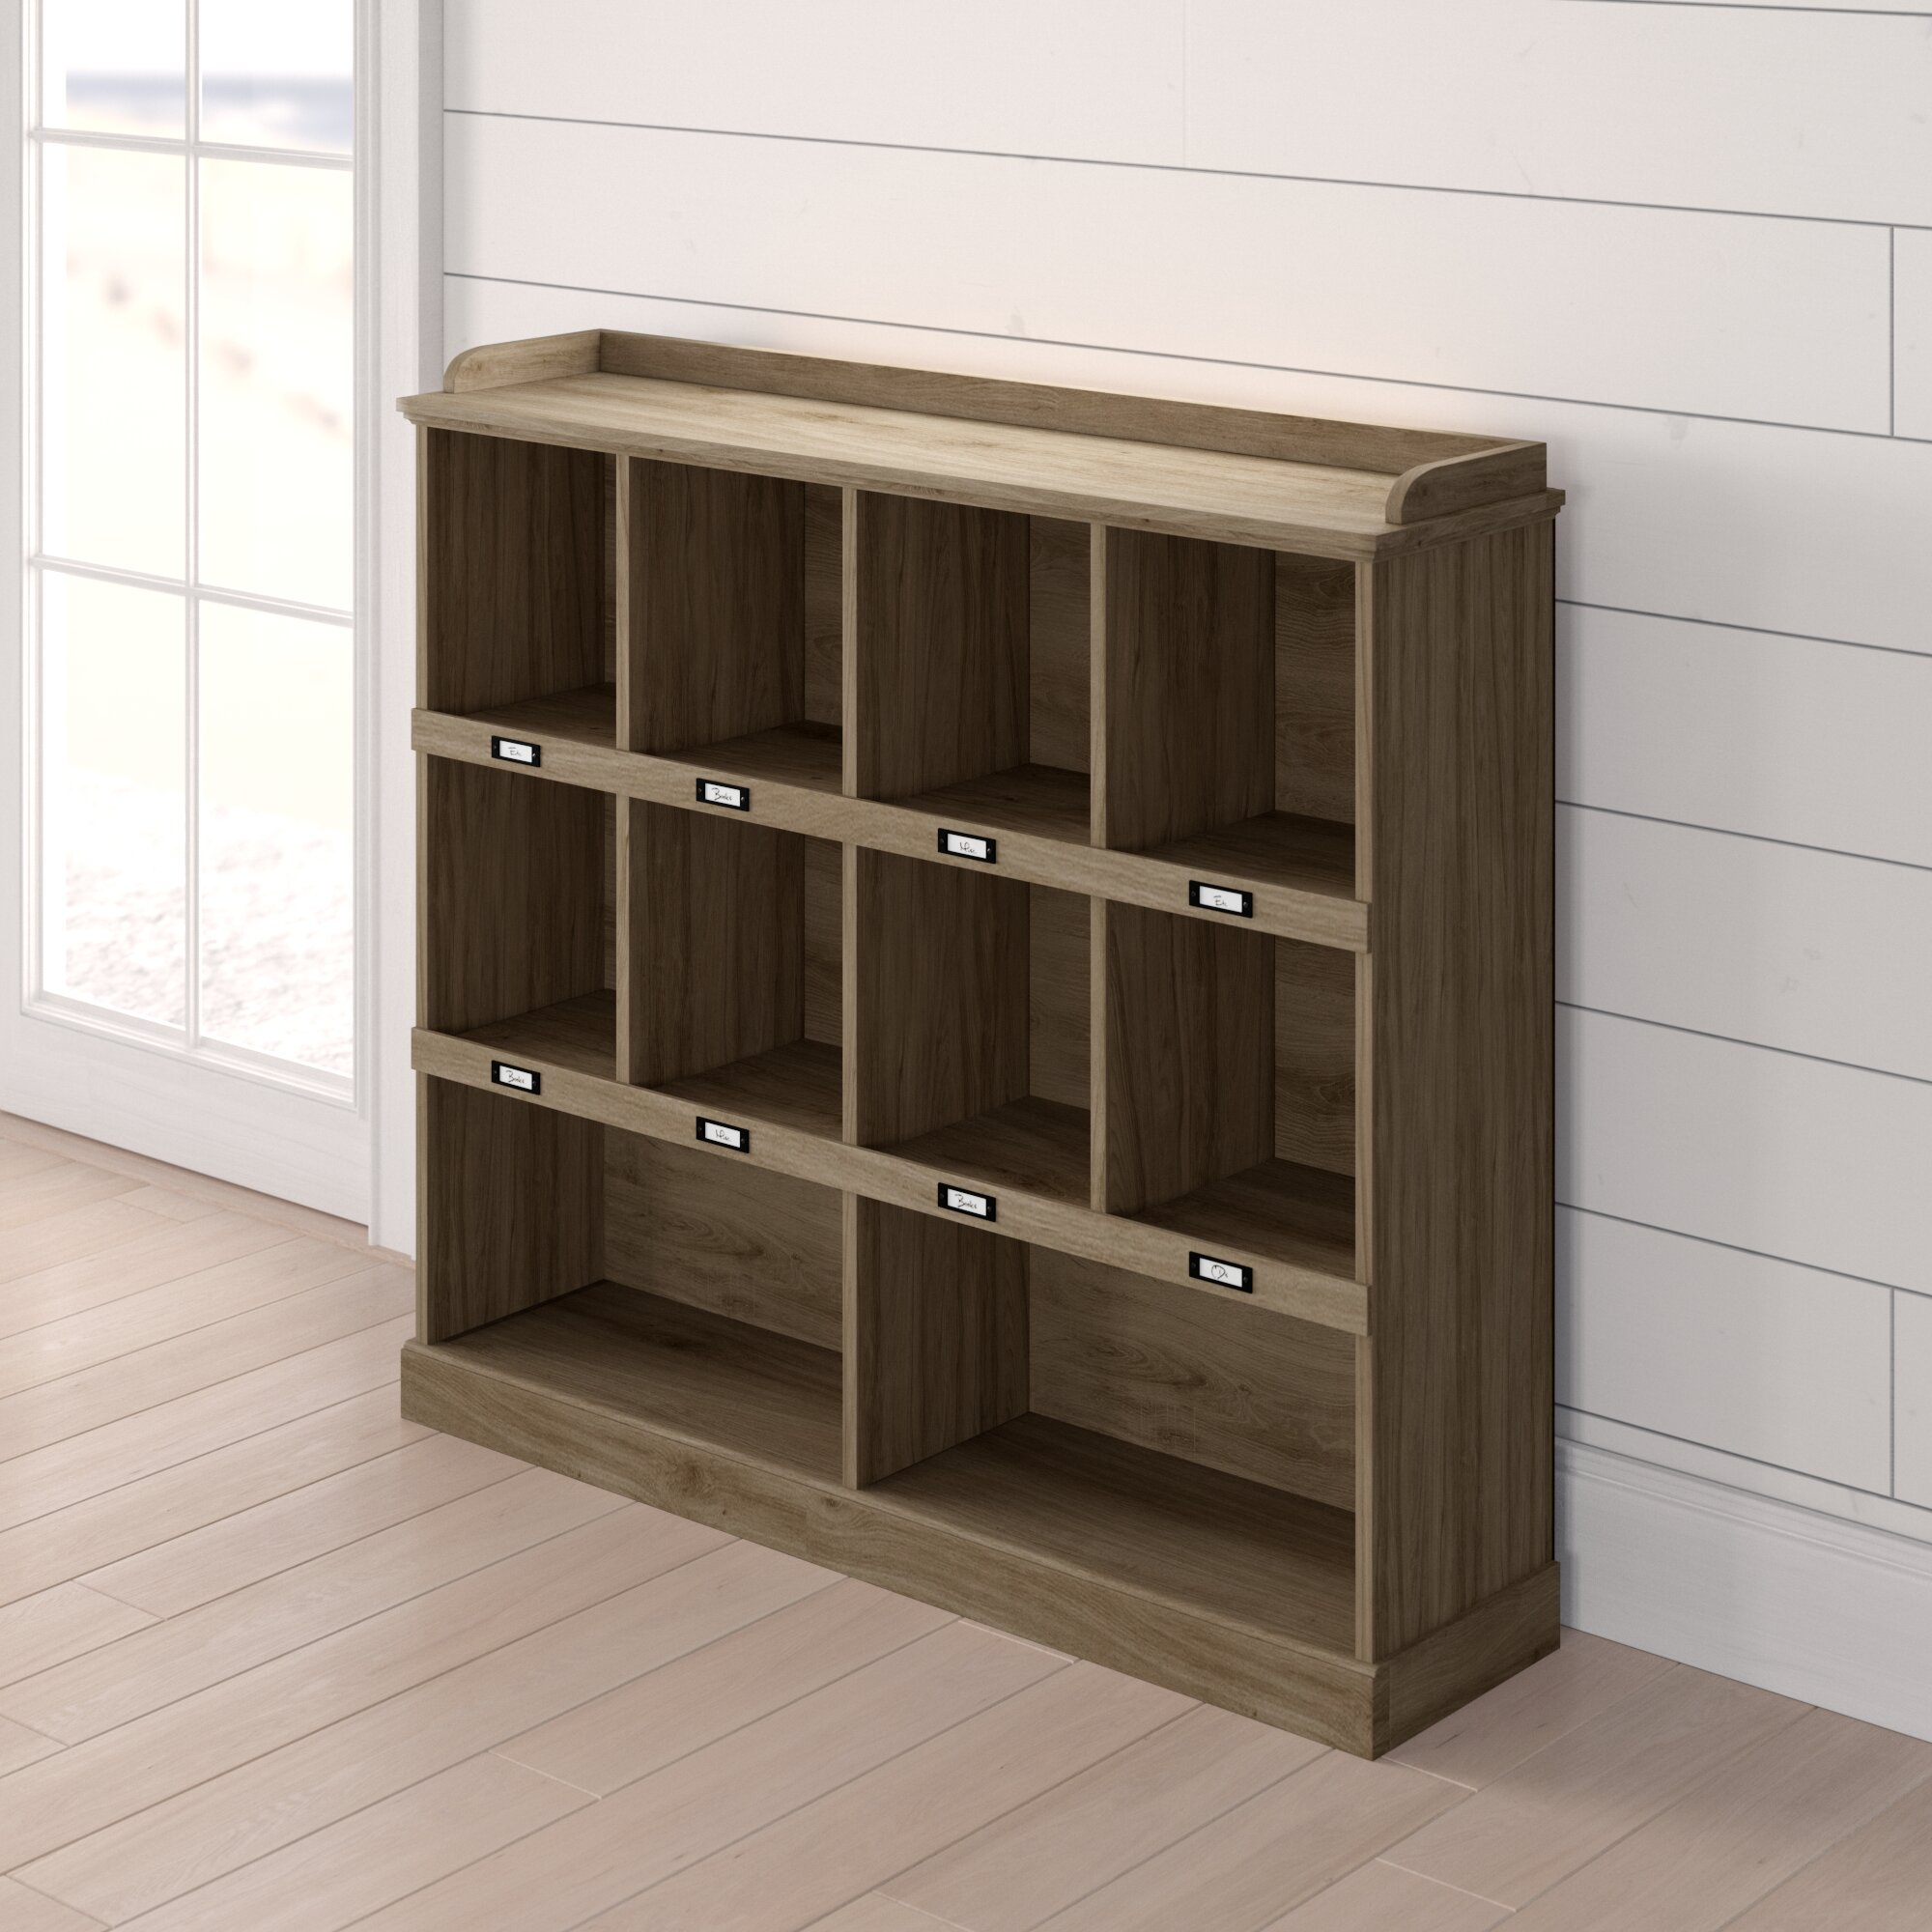 Beachcrest Home Bowerbank Cube Unit Bookcase Reviews